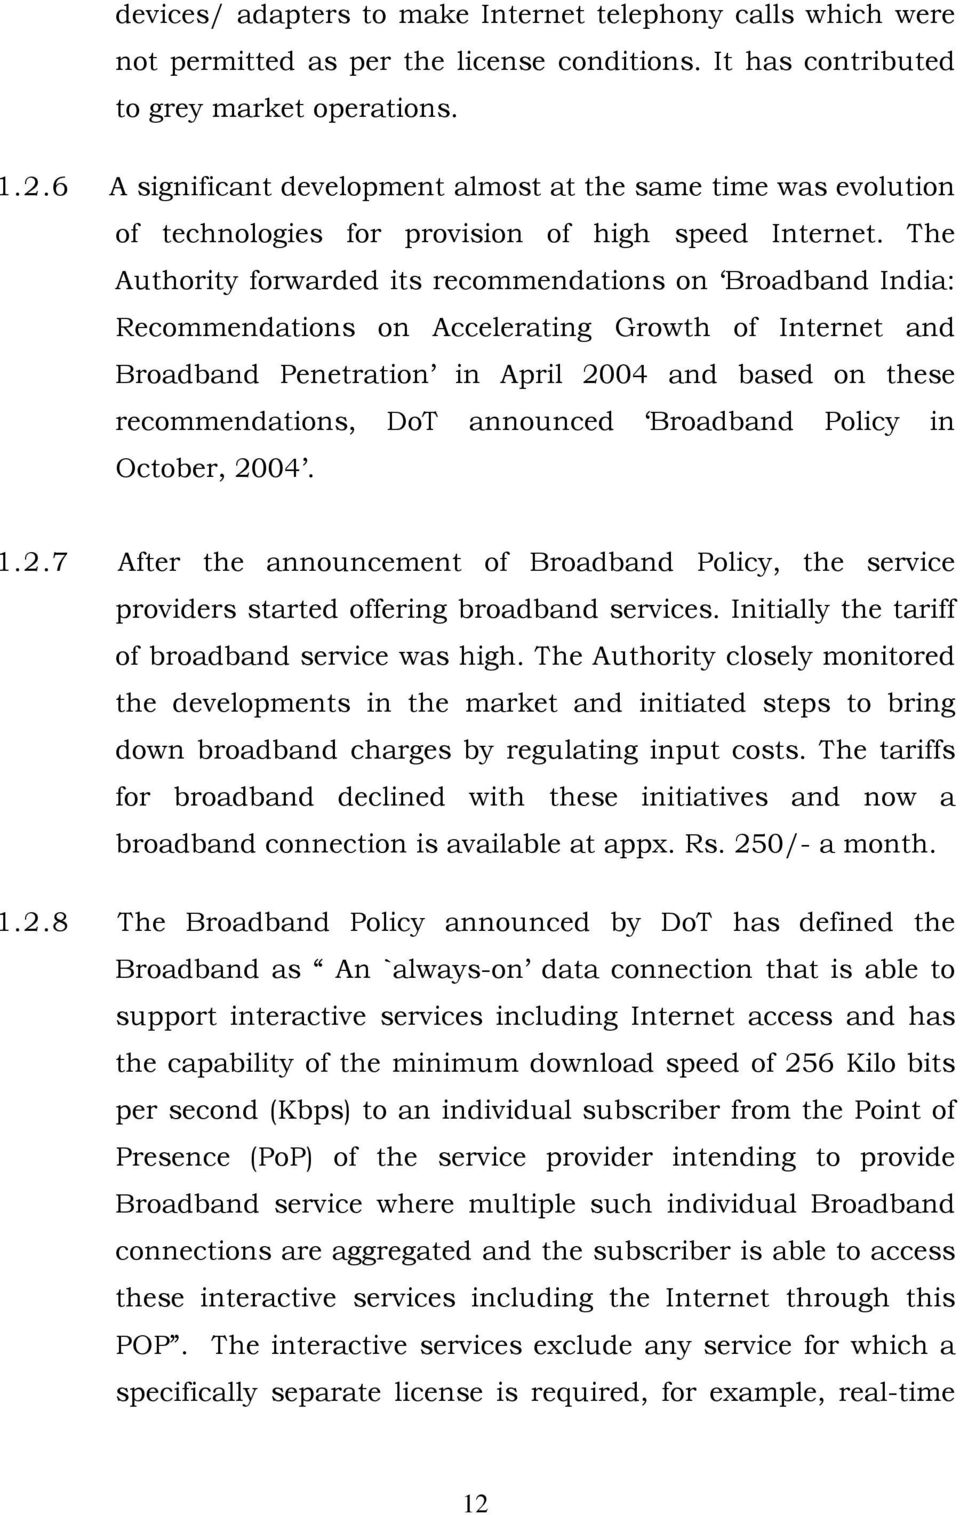 The Authority forwarded its recommendations on Broadband India: Recommendations on Accelerating Growth of Internet and Broadband Penetration in April 2004 and based on these recommendations, DoT